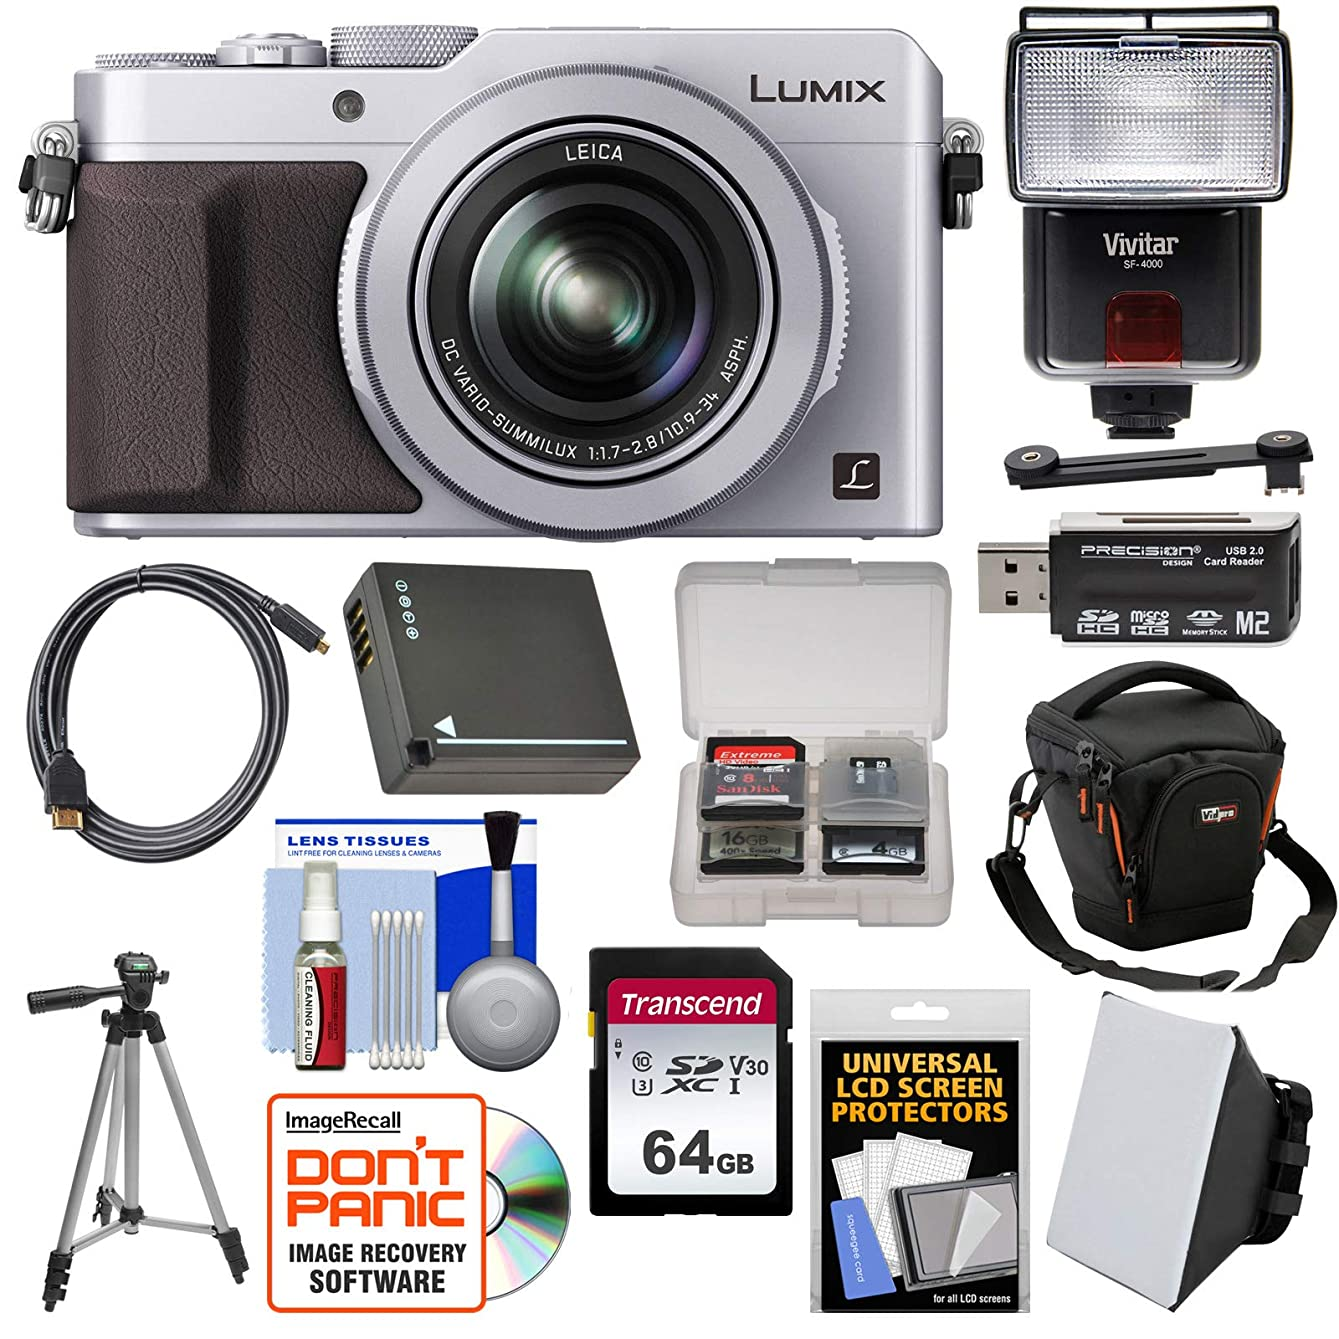 Panasonic Lumix DMC-LX100 4K Wi-Fi Digital Camera (Silver) with 64GB Card + Case + Flash & Soft Box + Battery + Tripod + Kit jxhhcx488492